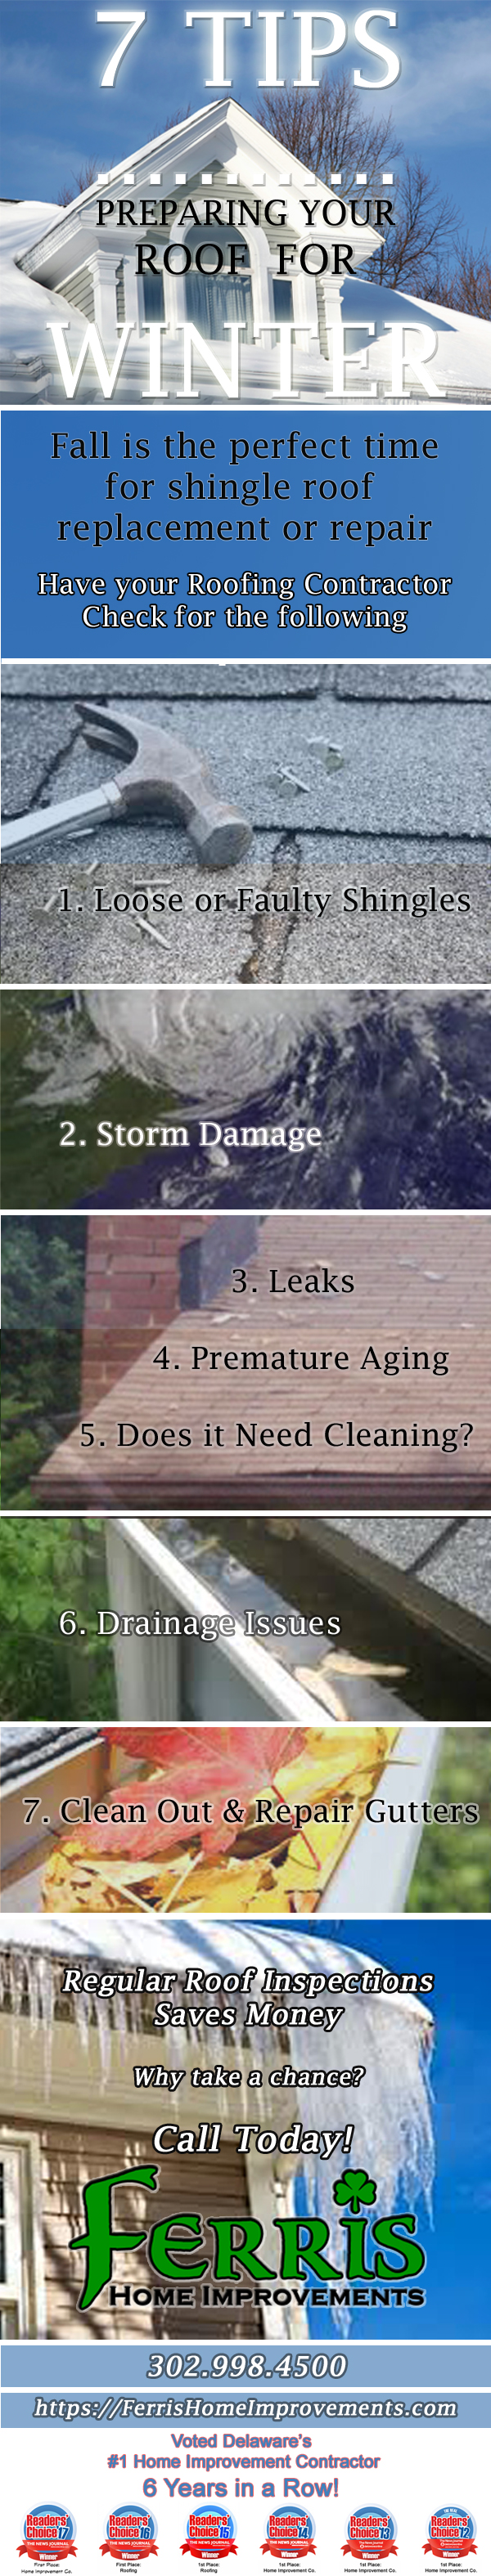 7 Tips Getting Roof Ready for Winter